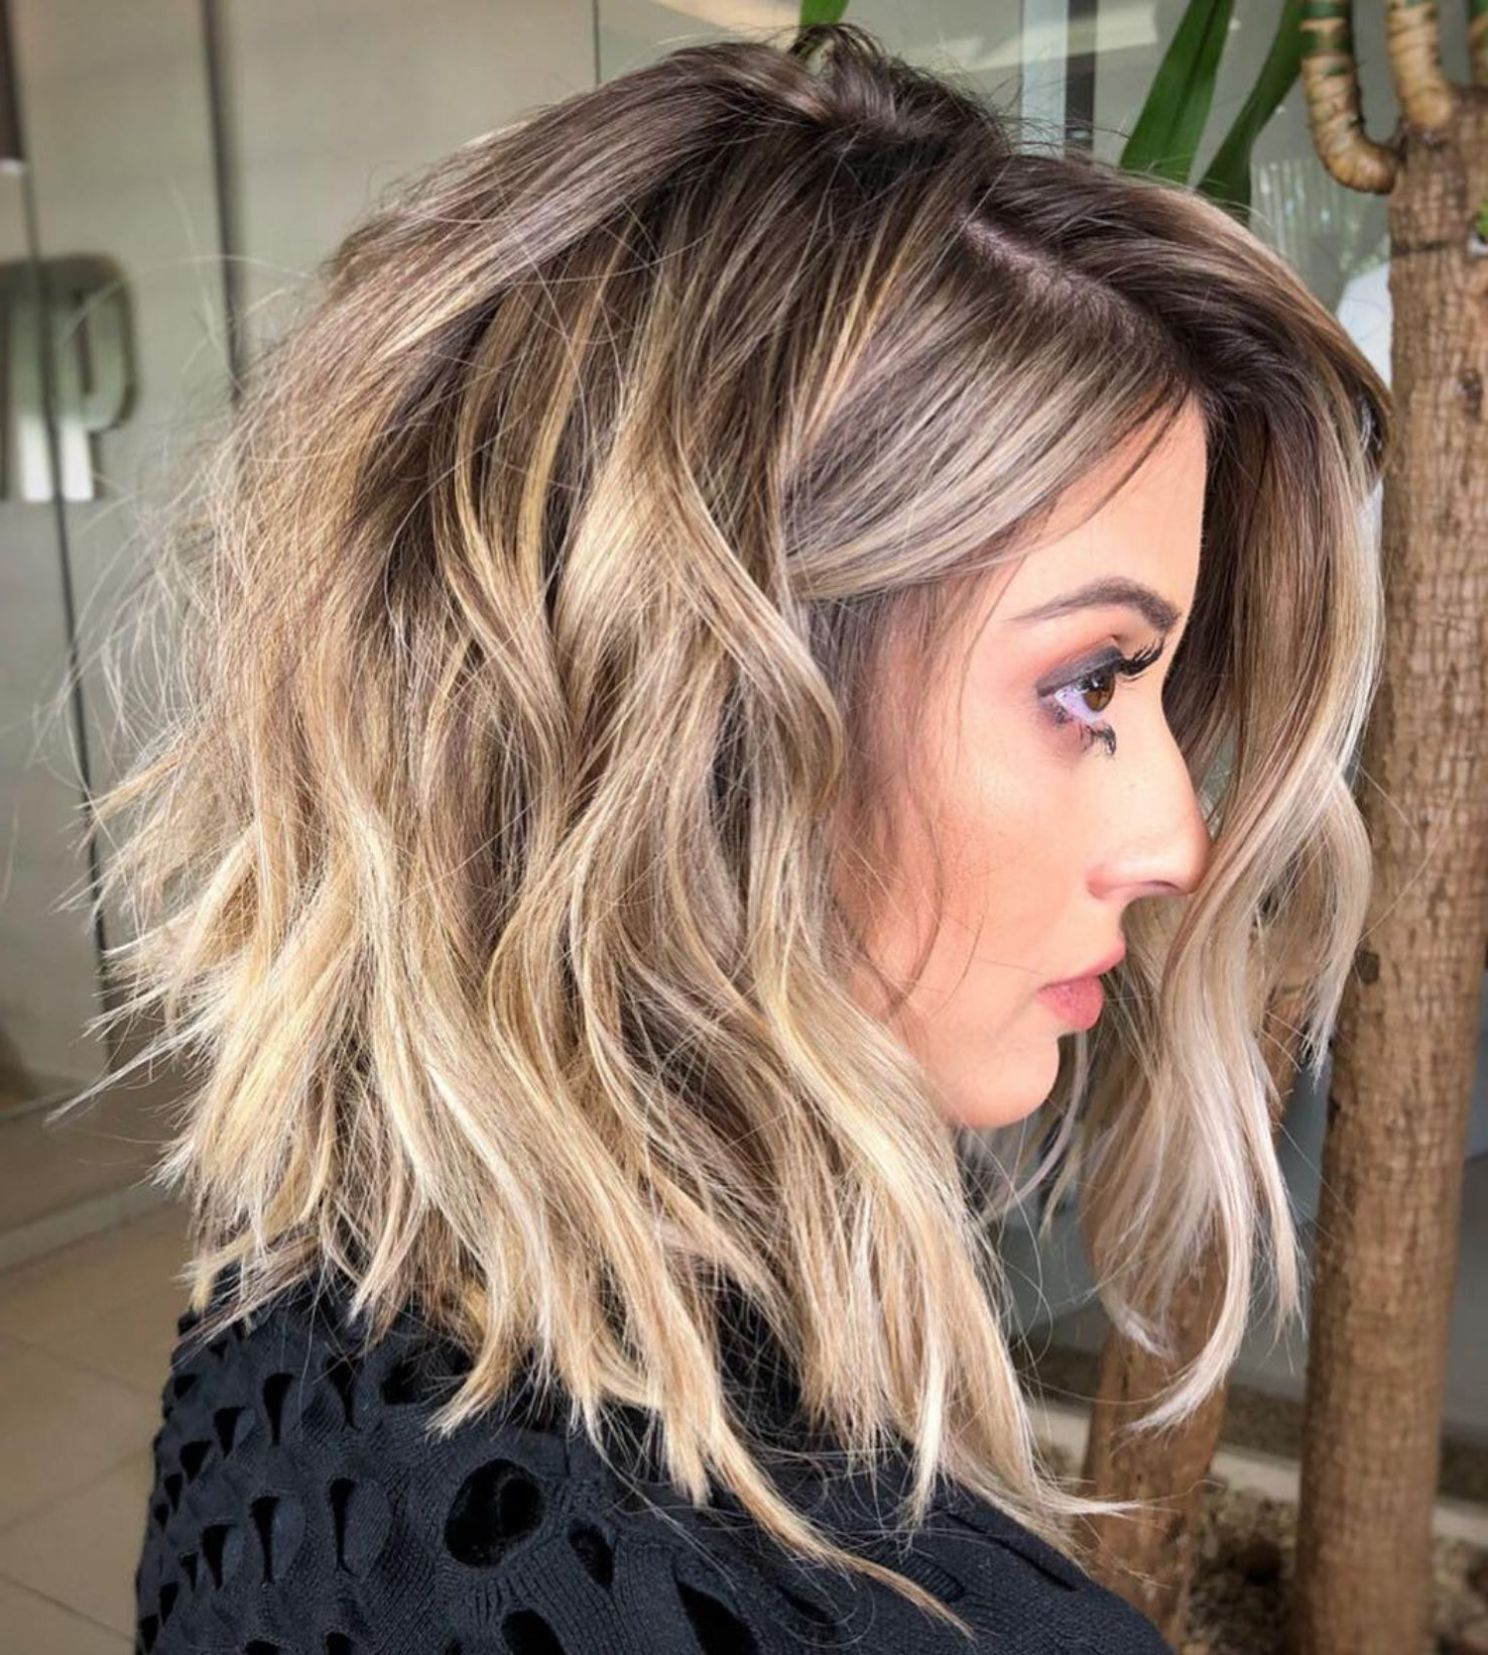 60 Most Magnetizing Hairstyles For Thick Wavy Hair In 2018 Pertaining To Tousled Wavy Bronde Bob Hairstyles (View 2 of 20)